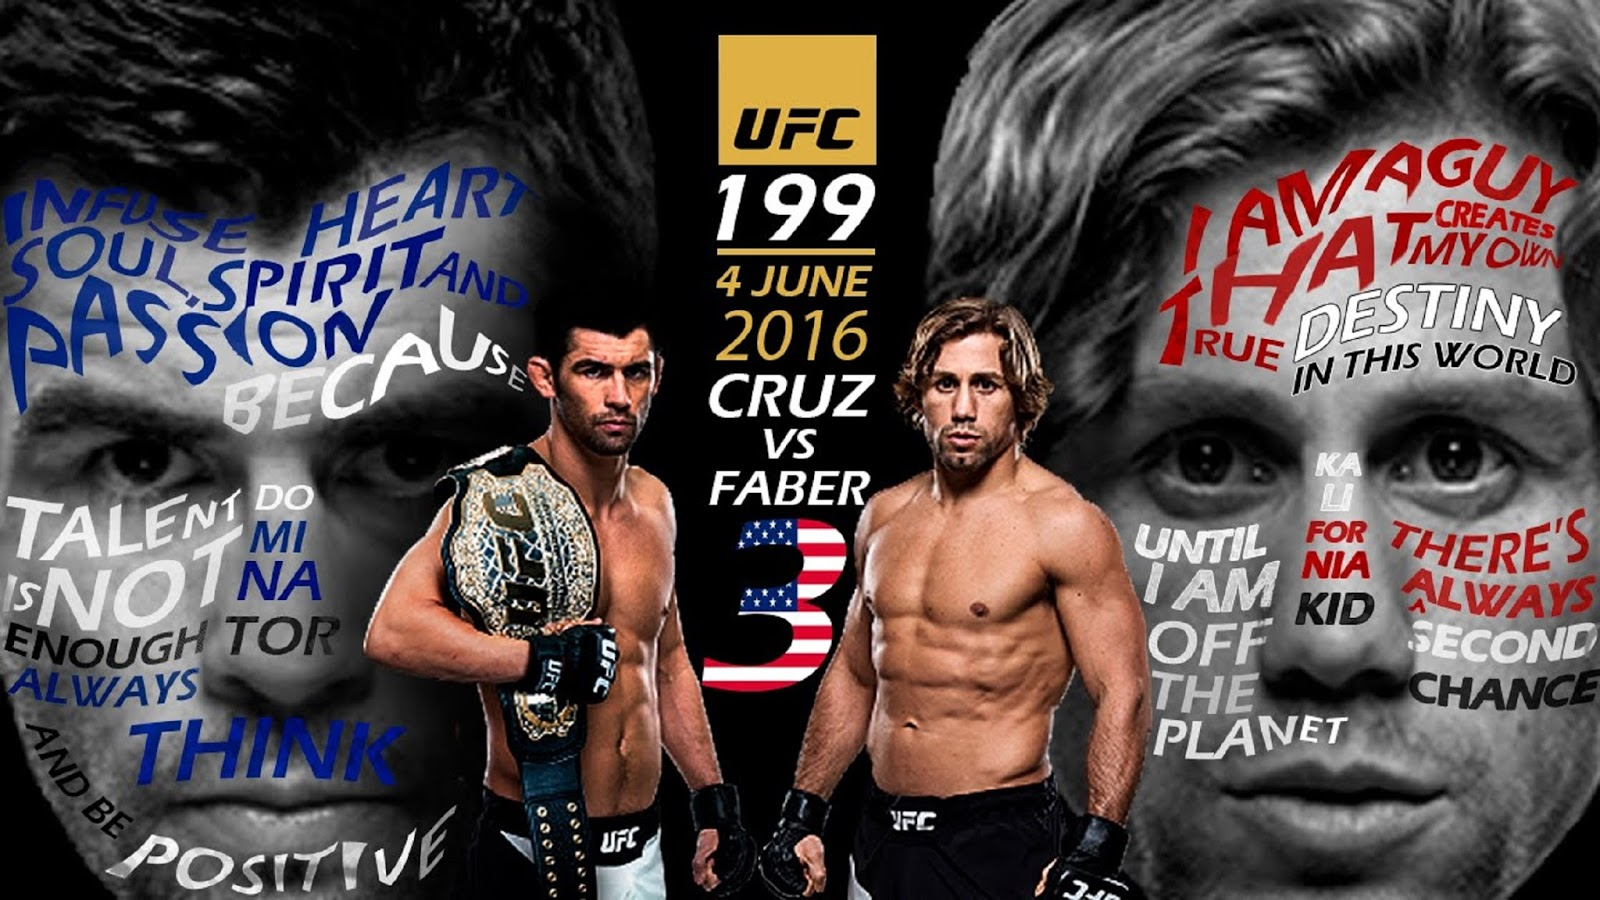 DOMINICK CRUZ VS. URIJAH FABER 7